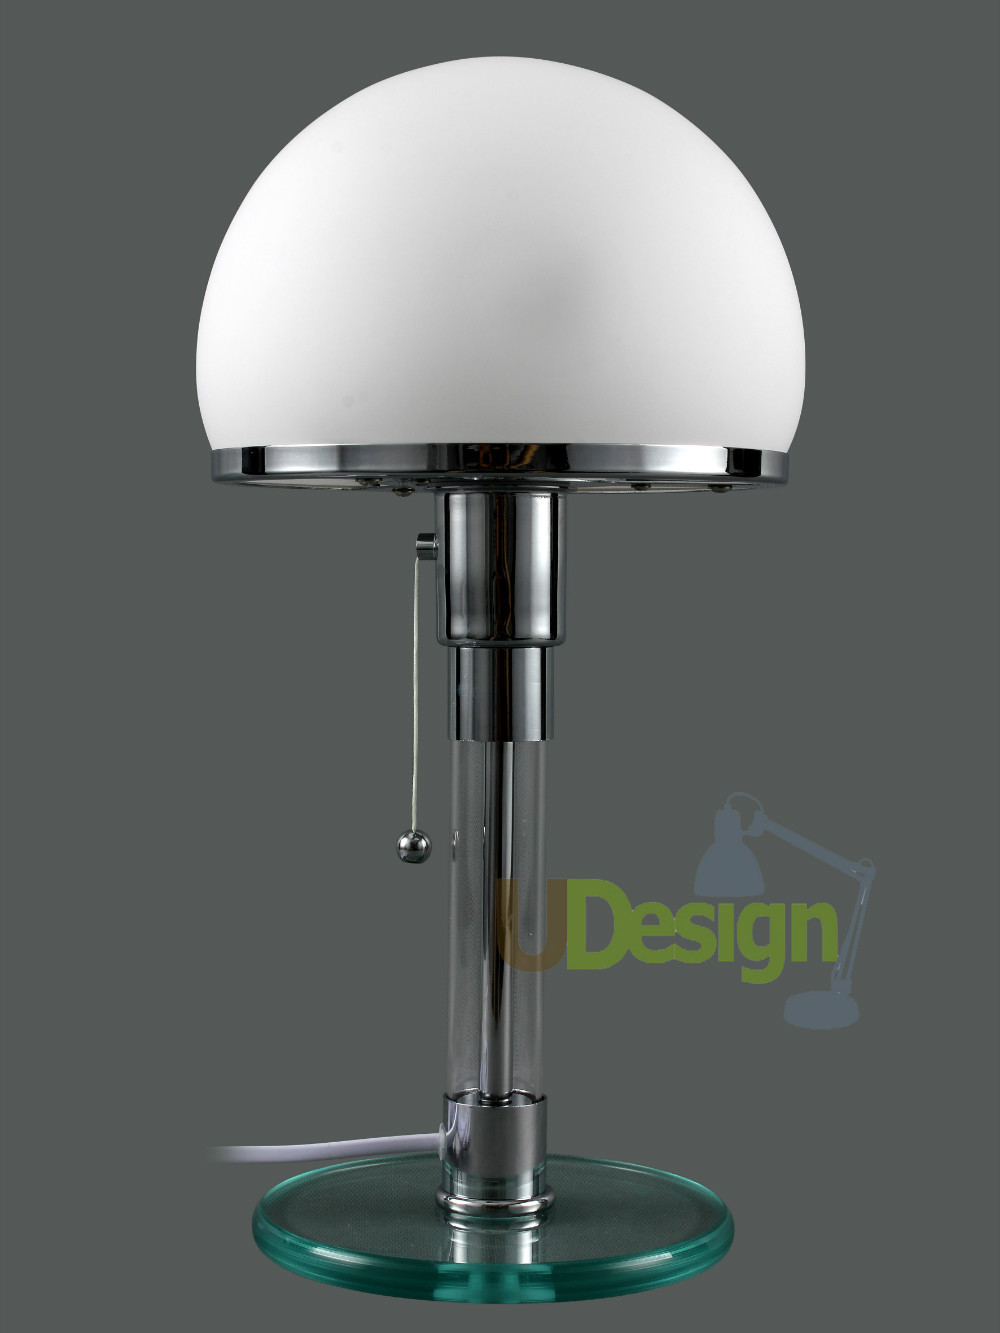 Shipping cost can be negotiated replica bauhaus lamp for Bauhaus replica